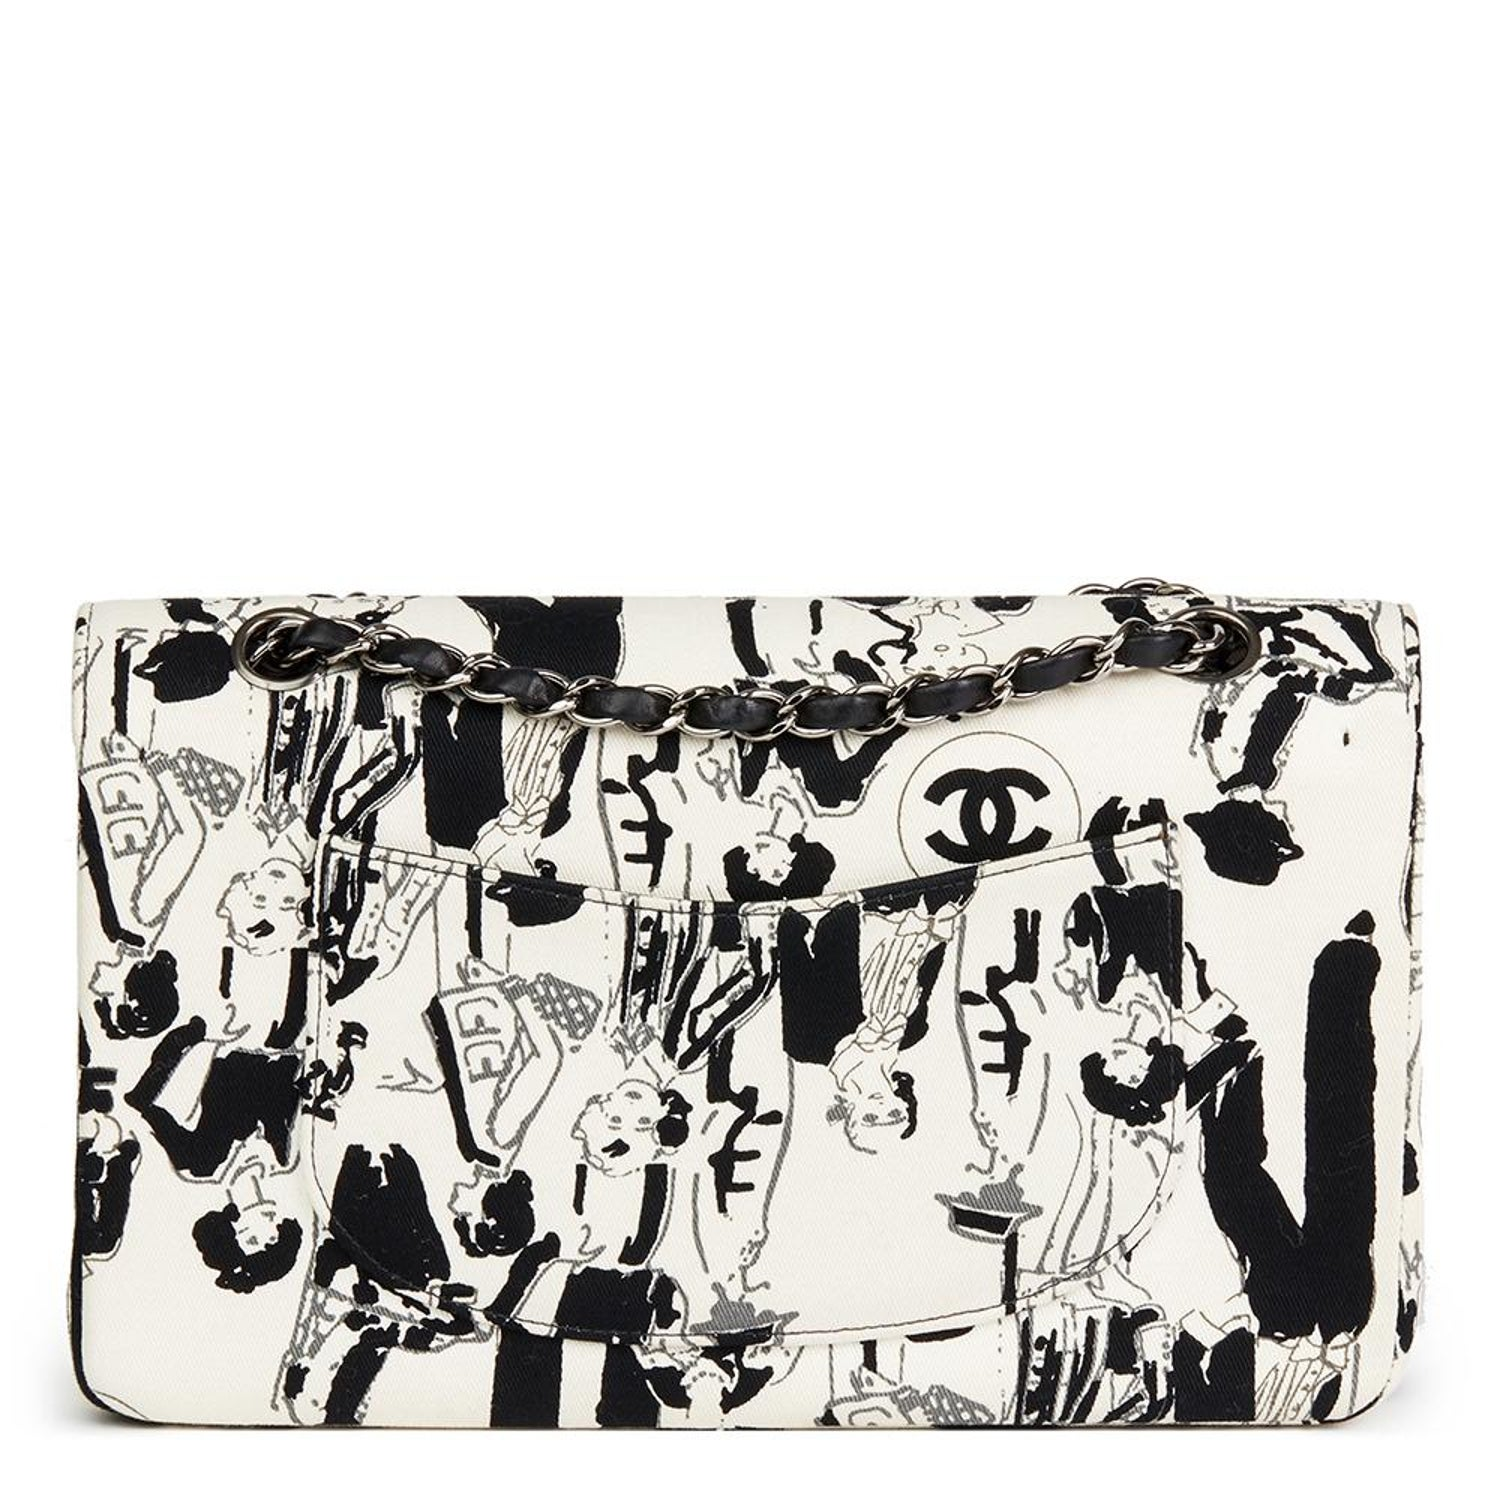 ea69947bff06 Chanel Black and White Karl Lagerfeld Sketches Medium Classic Double Flap  Bag at 1stdibs